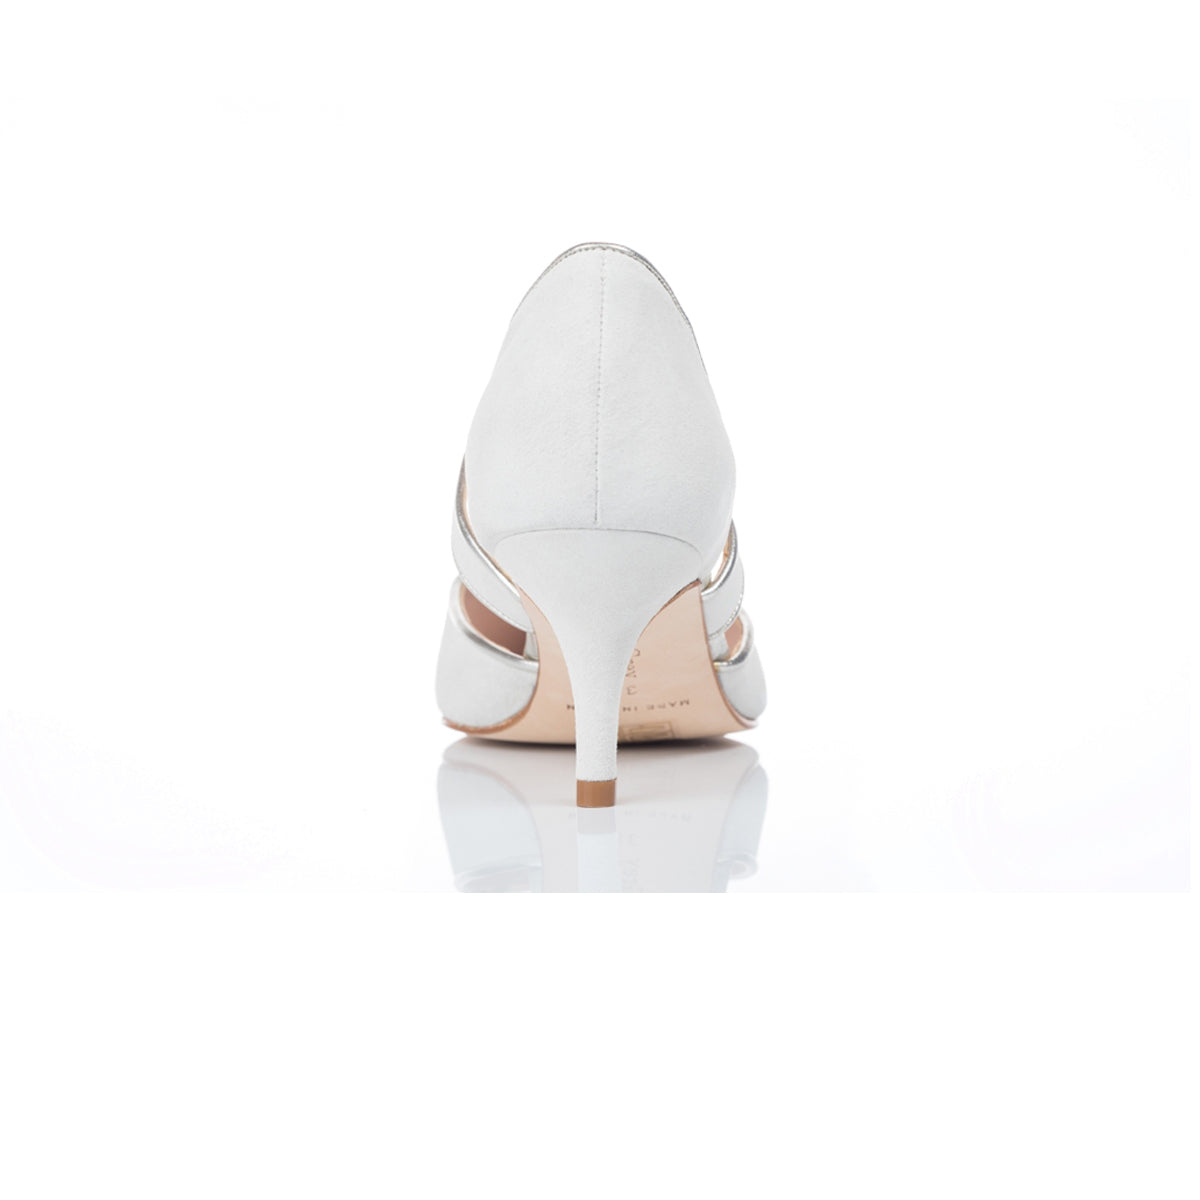 Wide Fit Ivory Suede Wedding Shoes With